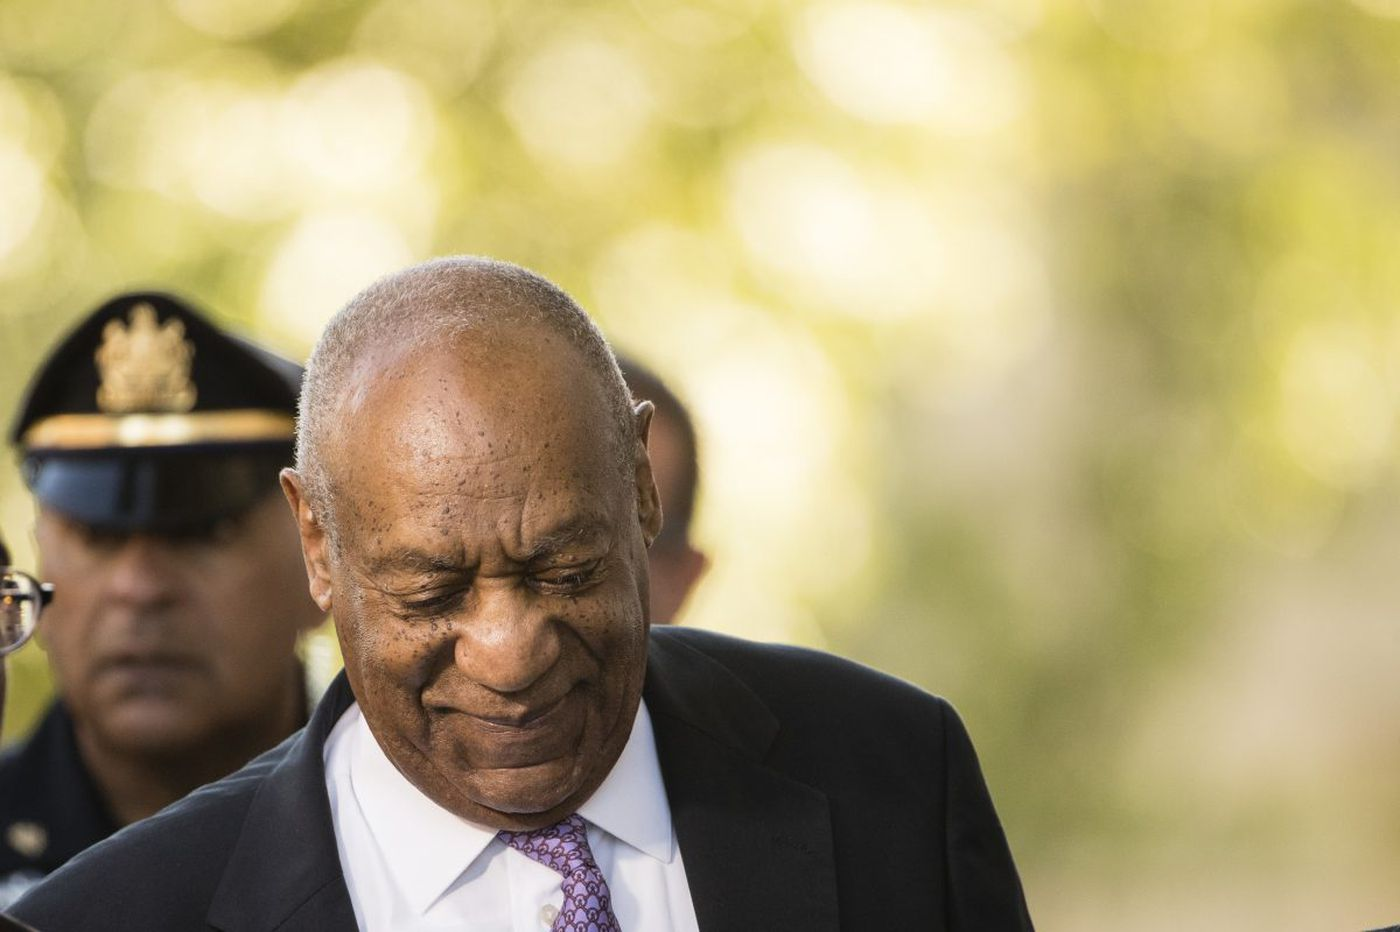 Ending with Cosby's own words, prosecution rests